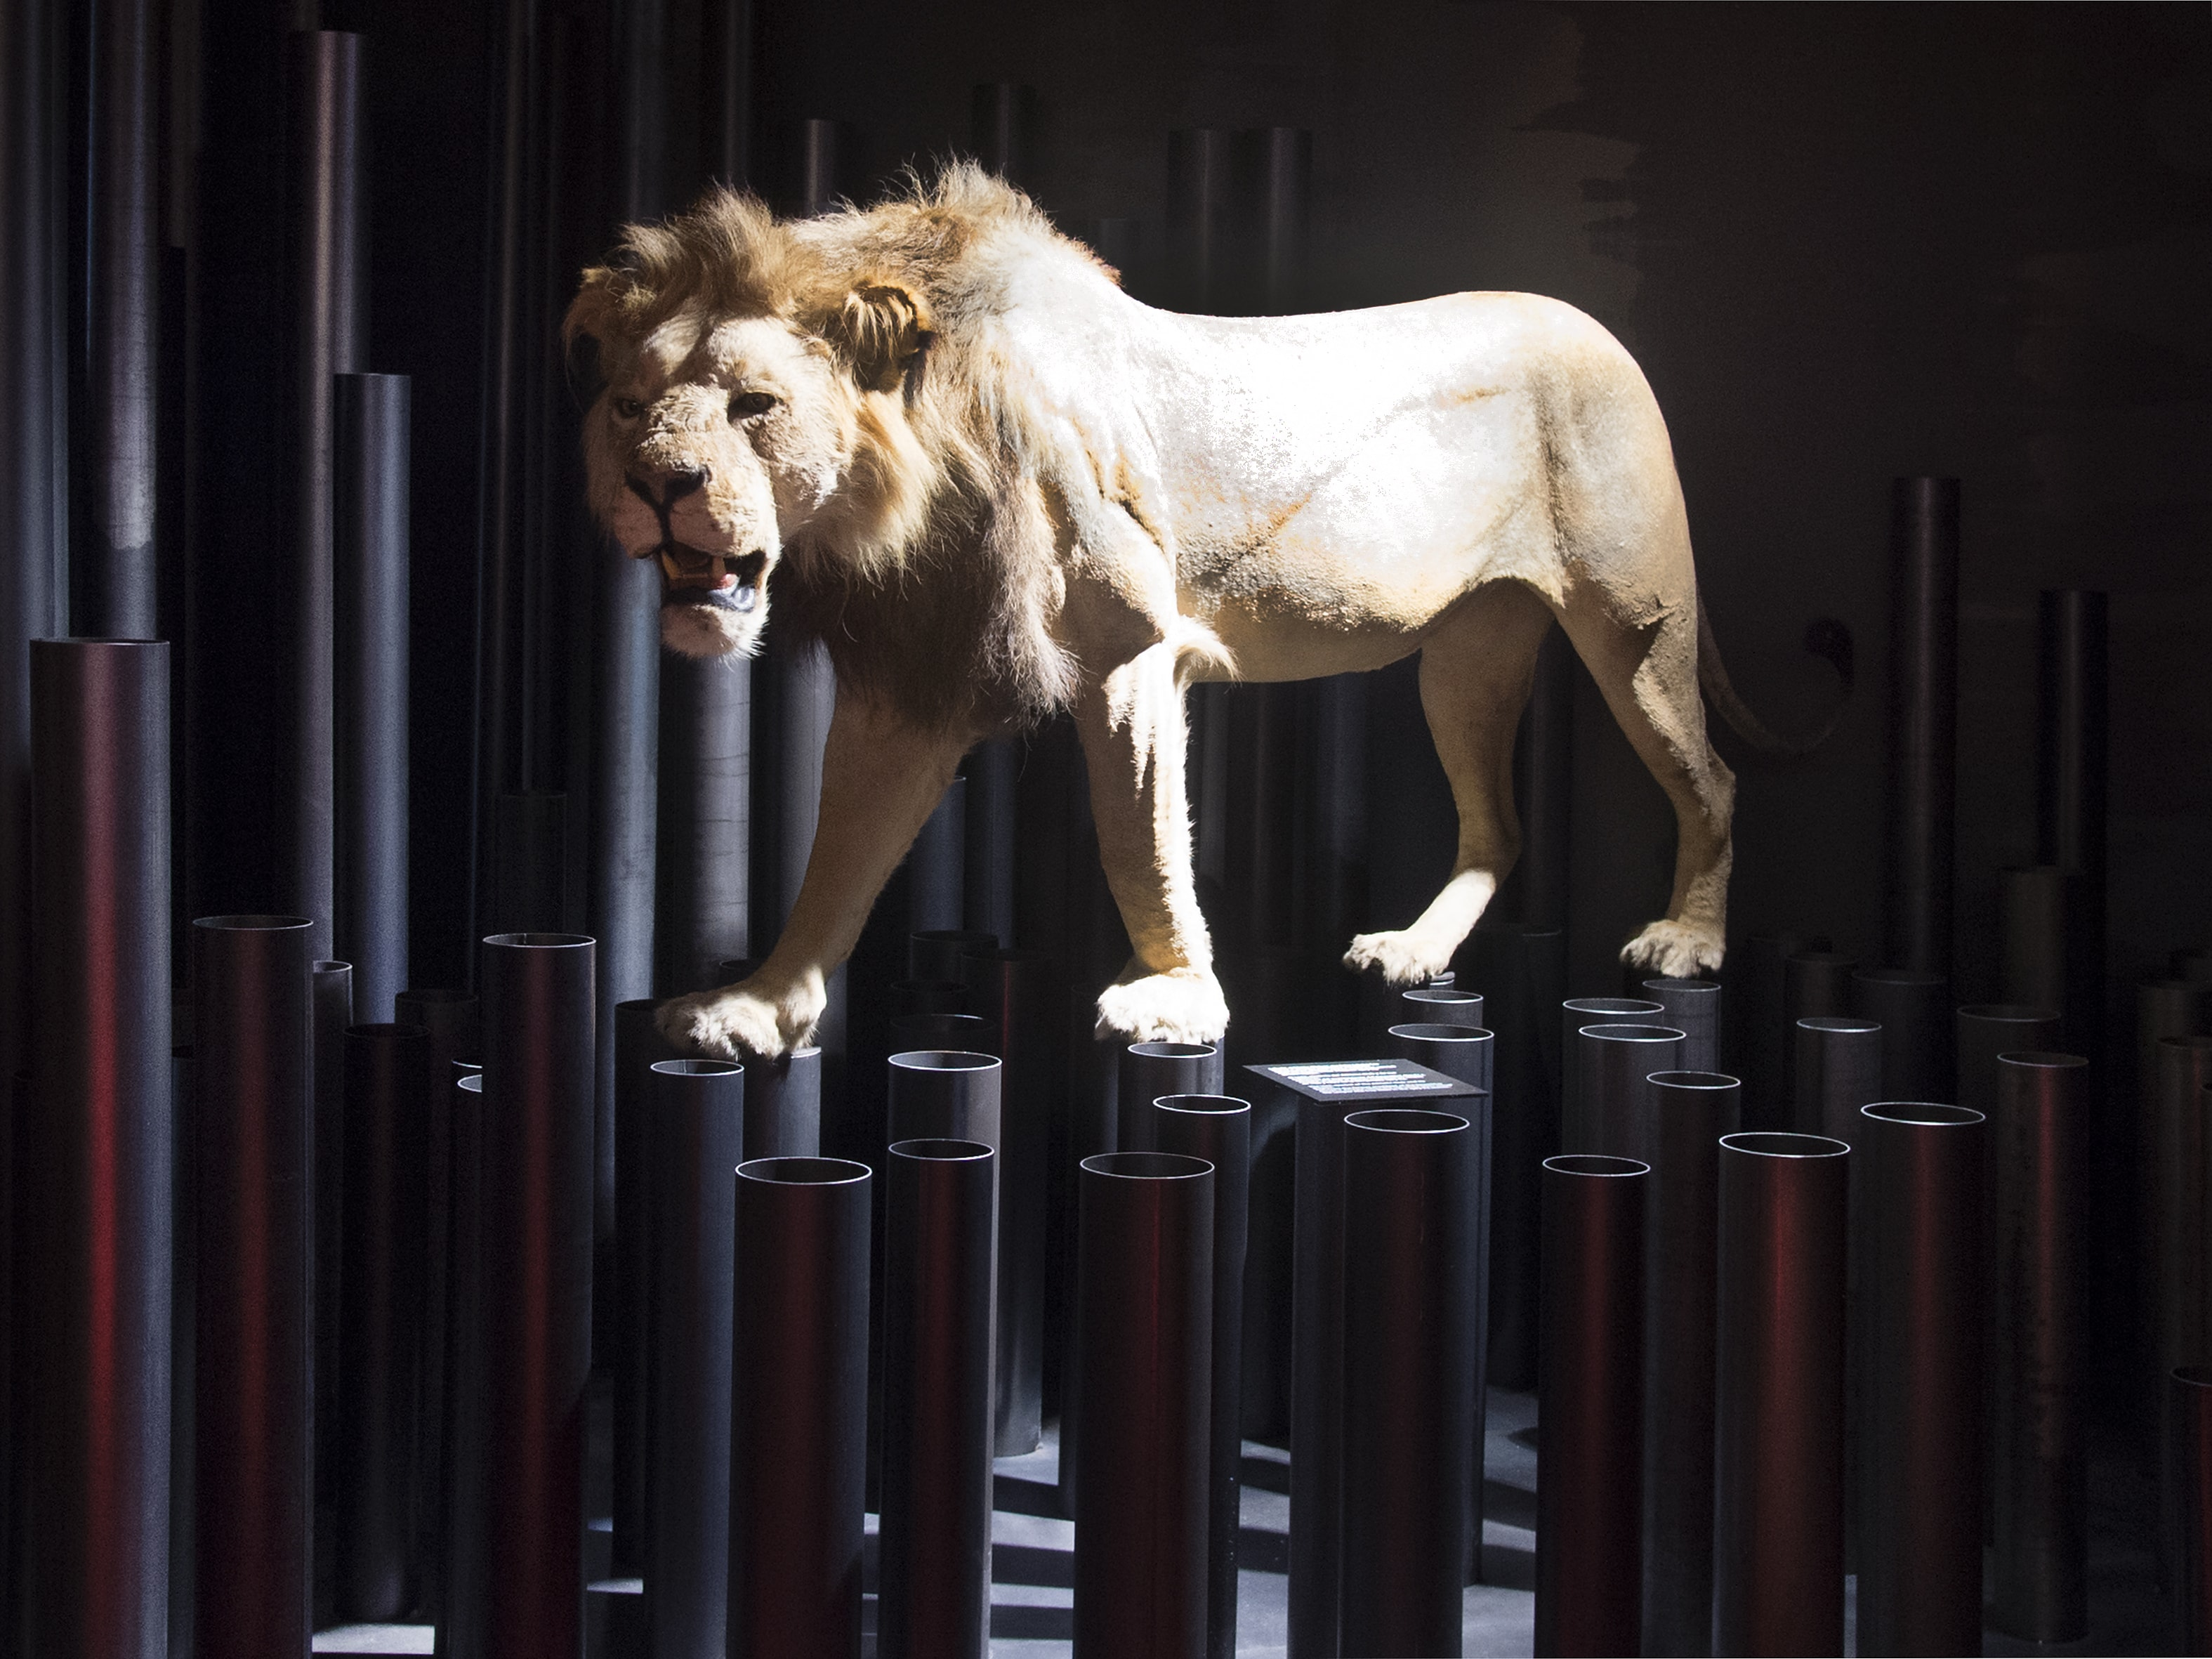 The Museum lion